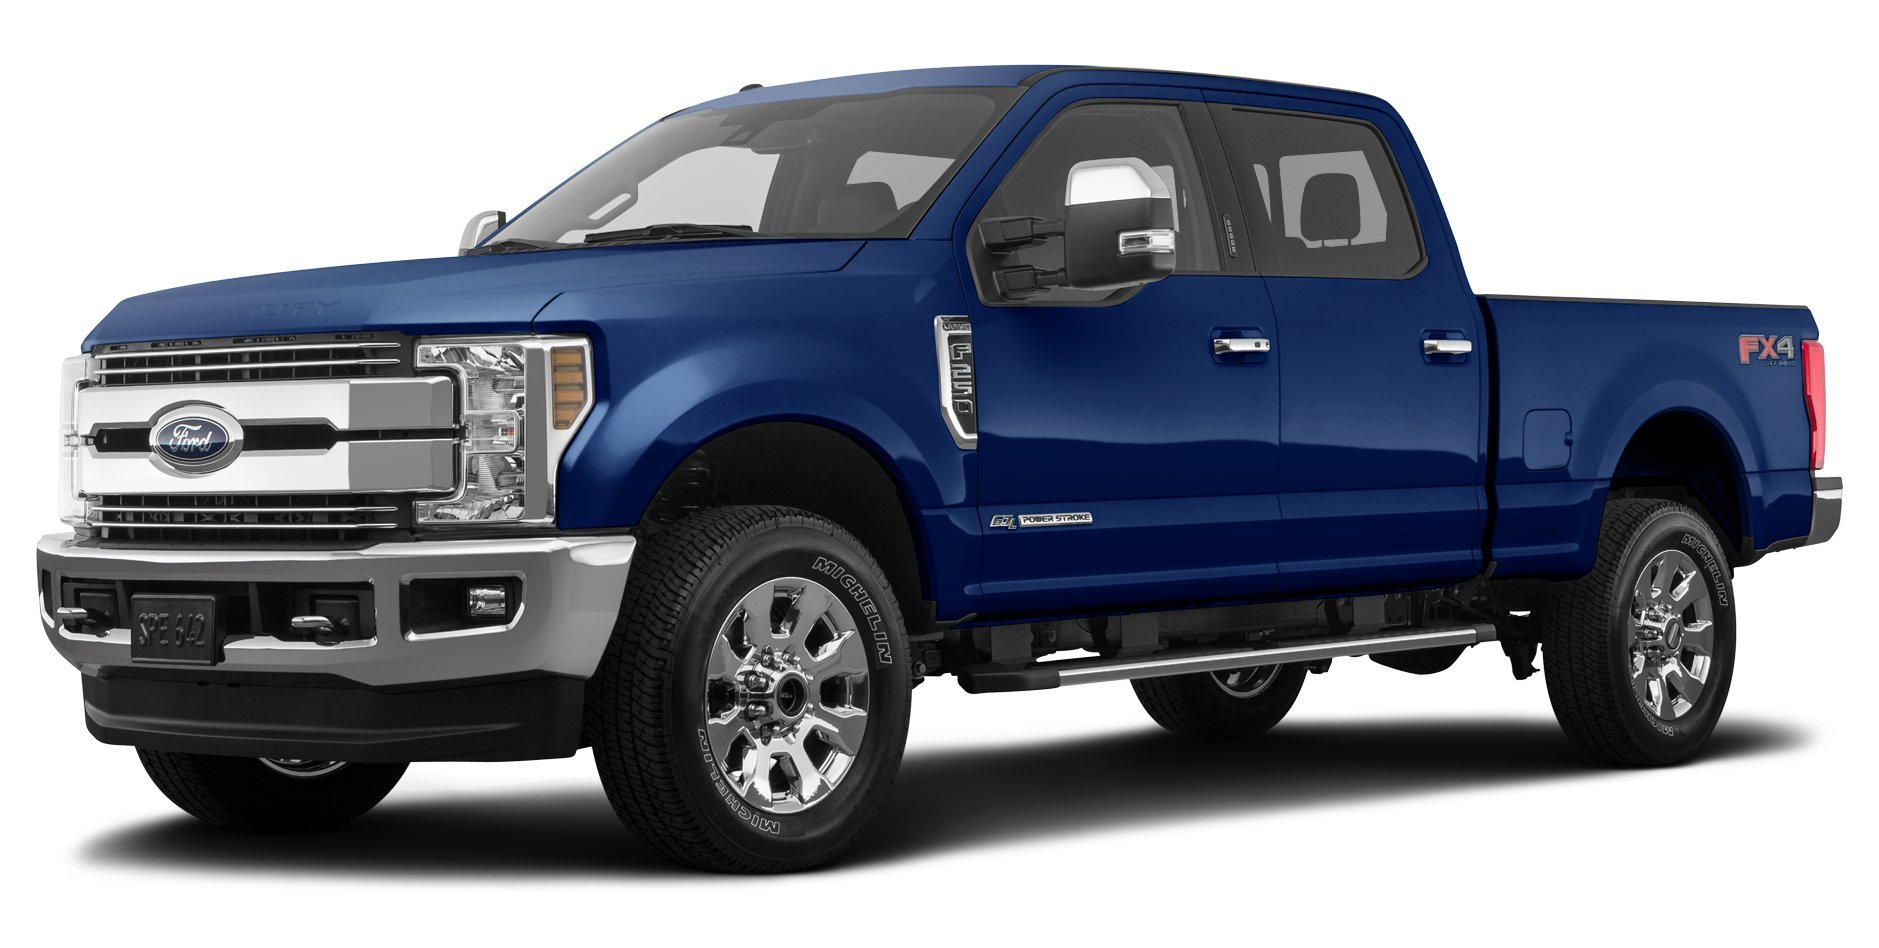 2018 Ford F 250 Super Duty Reviews Images And Specs 2004 Supercab King Ranch 2 Wheel Drive Crew Cab